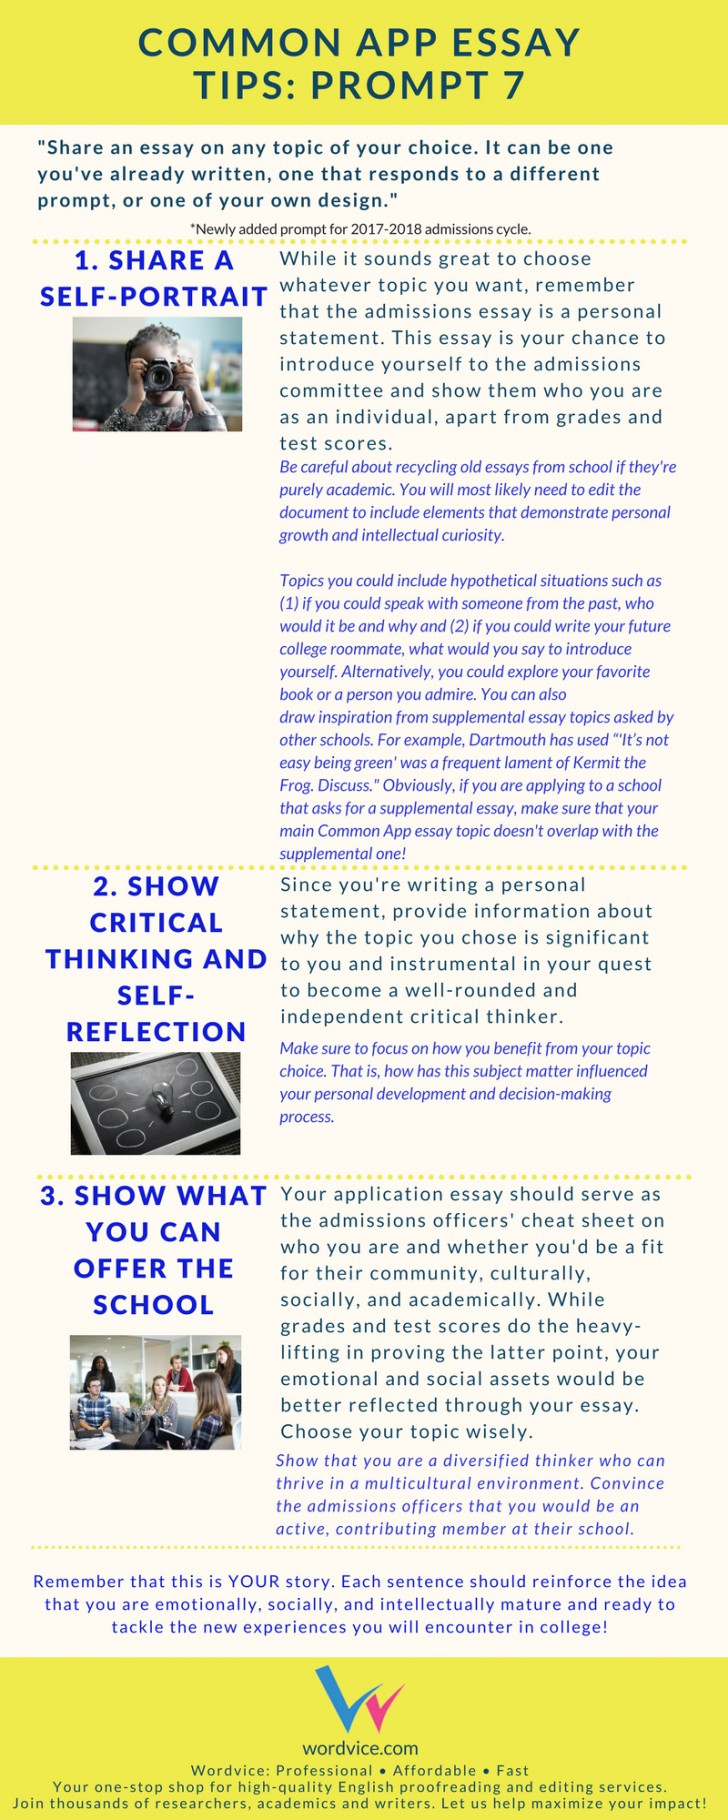 010 Common Application Essay Prompts Example App Brainstormprompt Best 2017 2017-18 A Guide 728